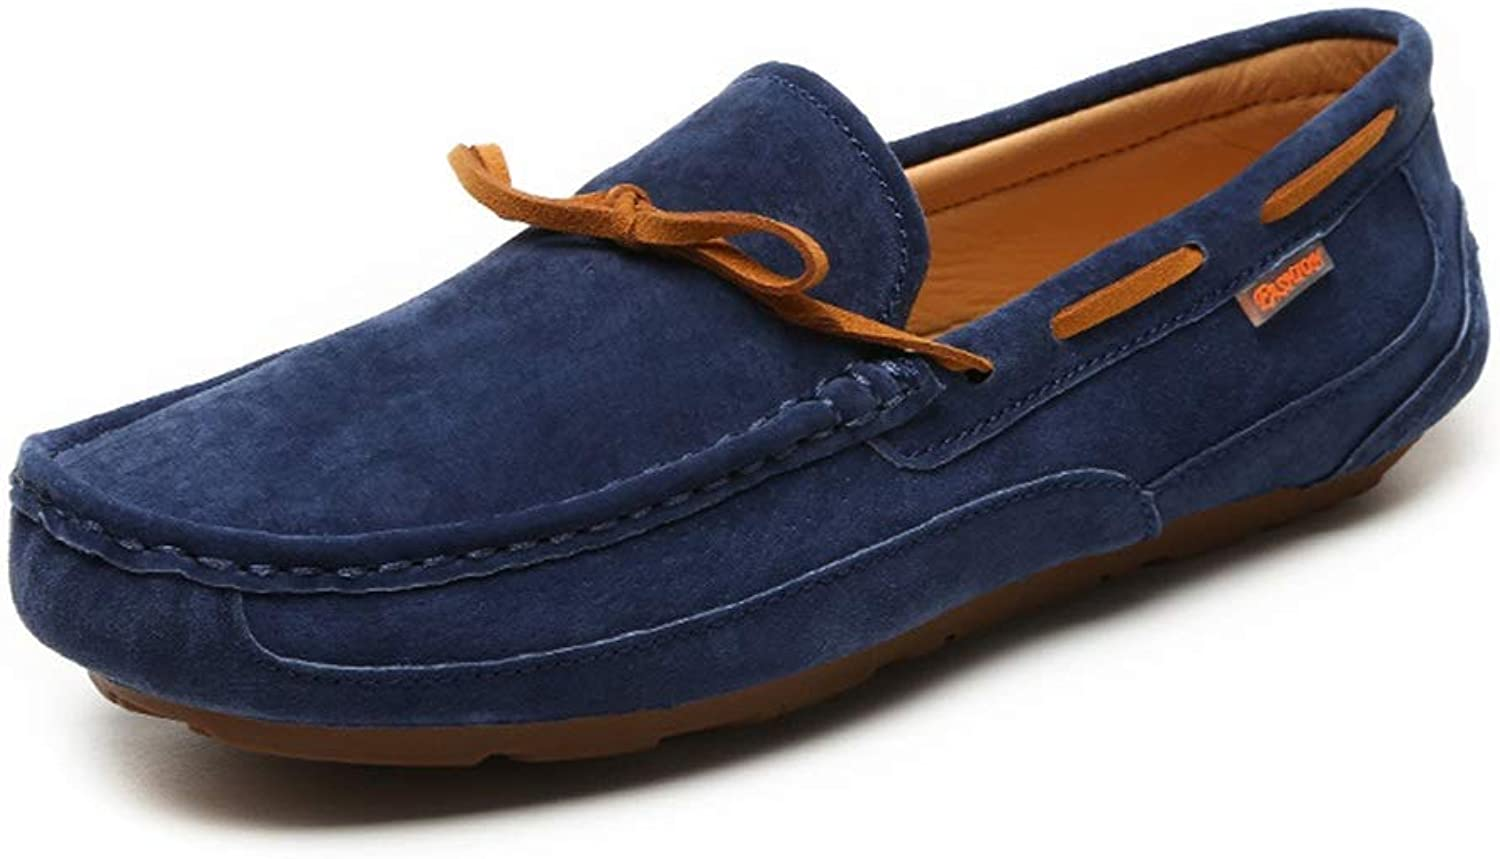 Men's Classic Original Suede Leather Penny Loafers Comfort Low Cut shoes Driving shoes Slip-on Flats Moccasin Slippers